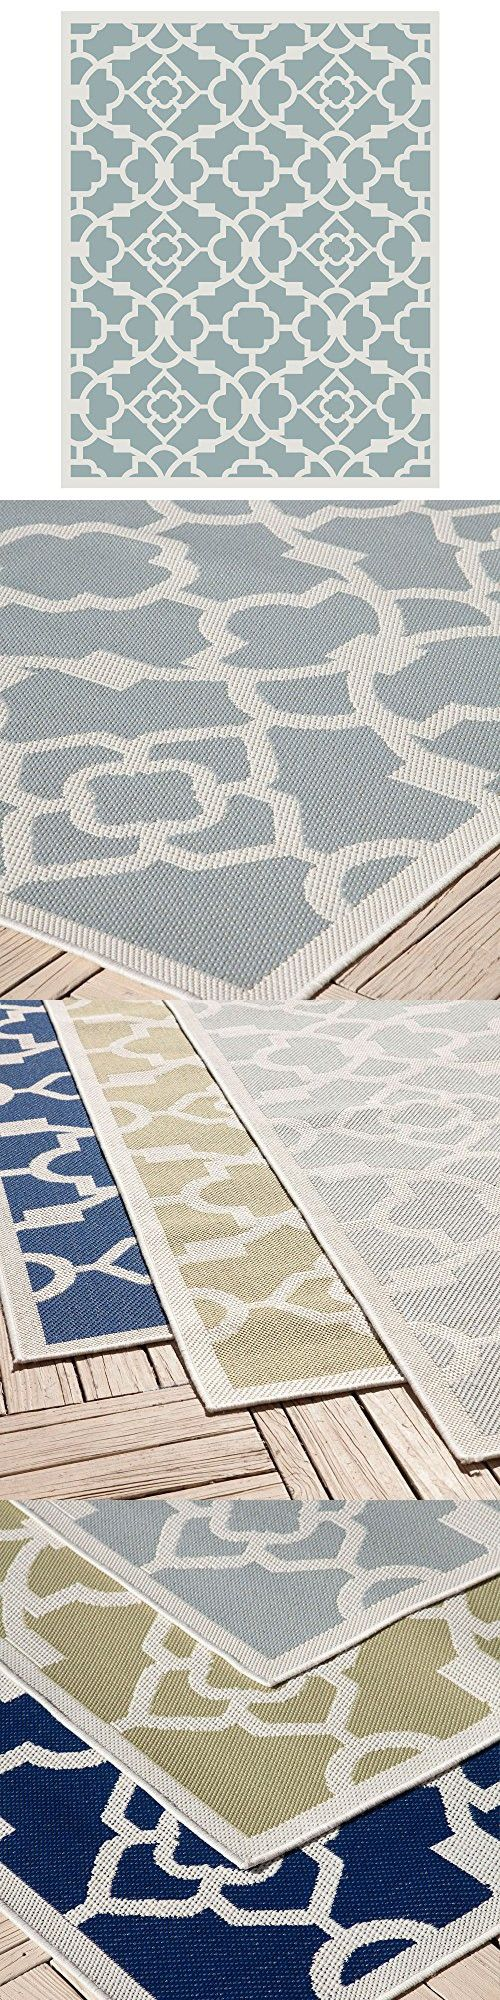 Empirepatio Monaco Outdoor Patio Rug Rug810gy1 8 Long X 10 Wide Slate Gray Outdoor Rugs Patio Patio Rugs Outdoor Patio